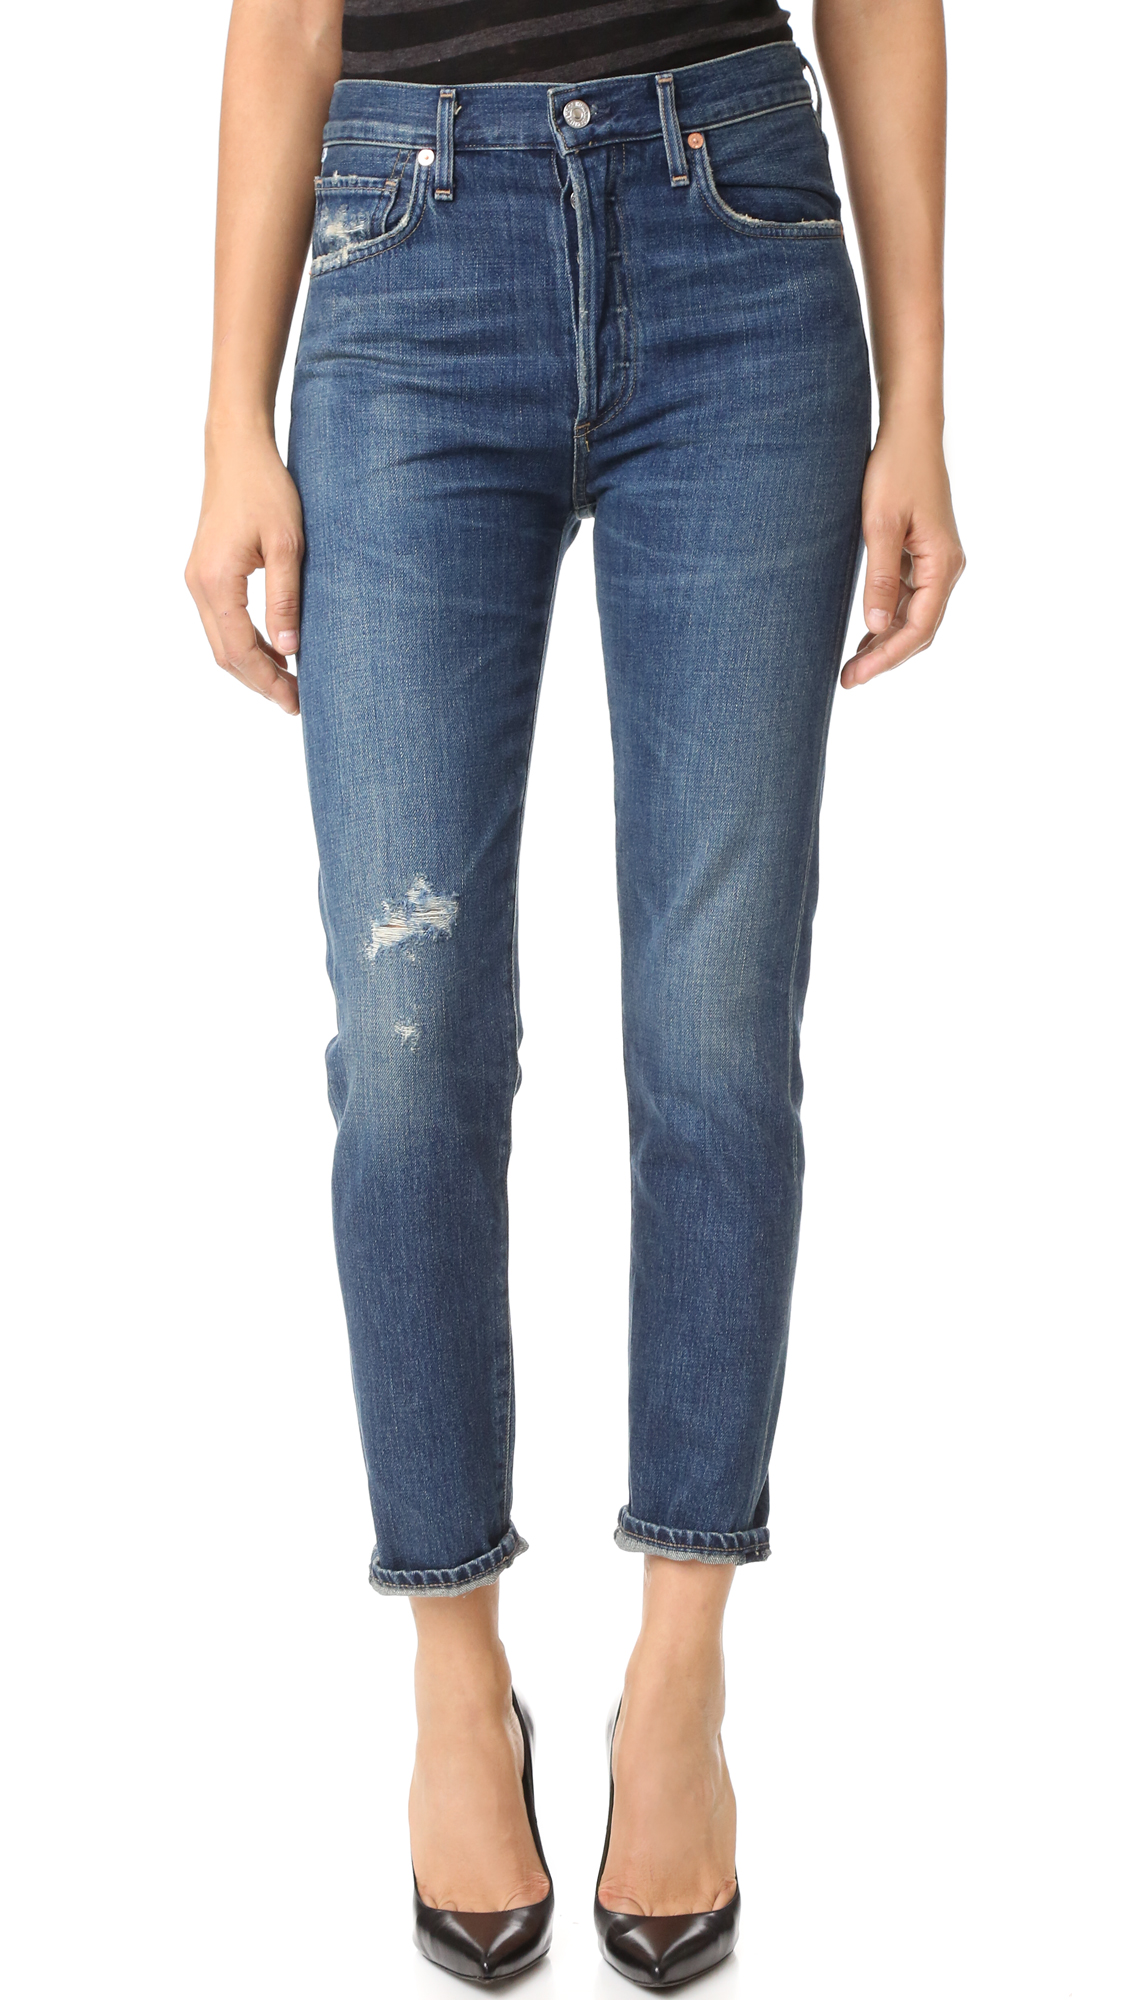 Citizens Of Humanity Liya High Rise Jeans - Wiltern at Shopbop